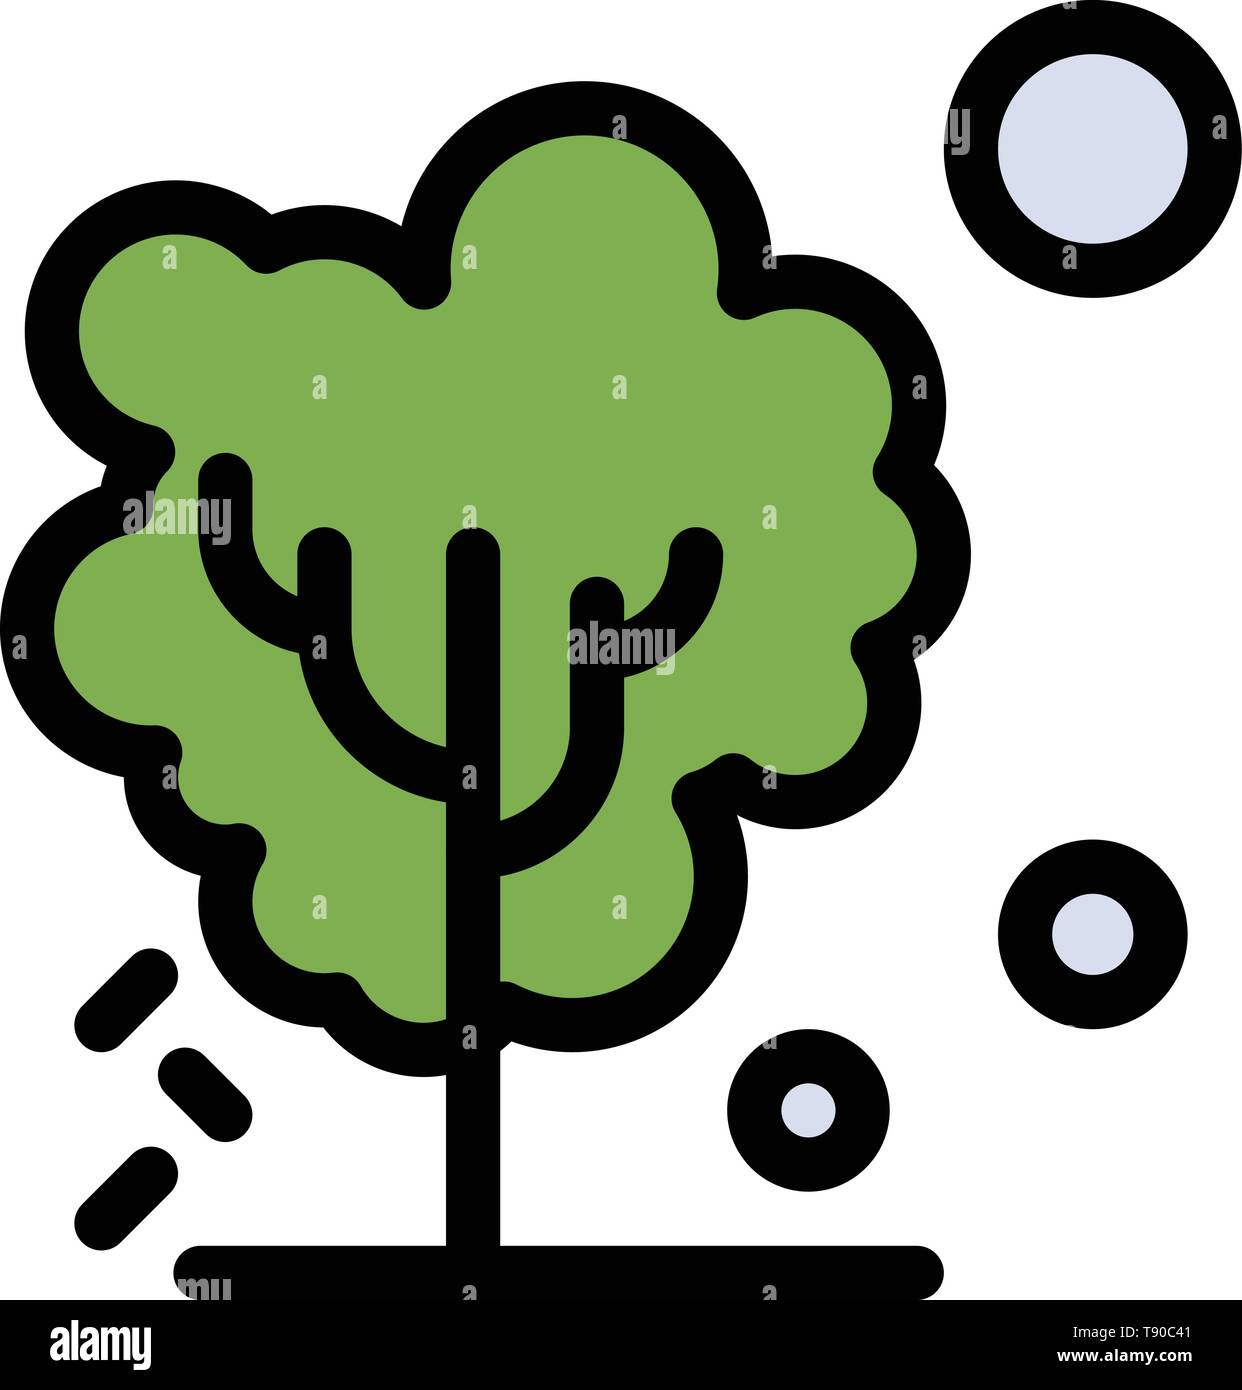 Dry, Global, Soil, Tree, Warming  Flat Color Icon. Vector icon banner Template - Stock Image